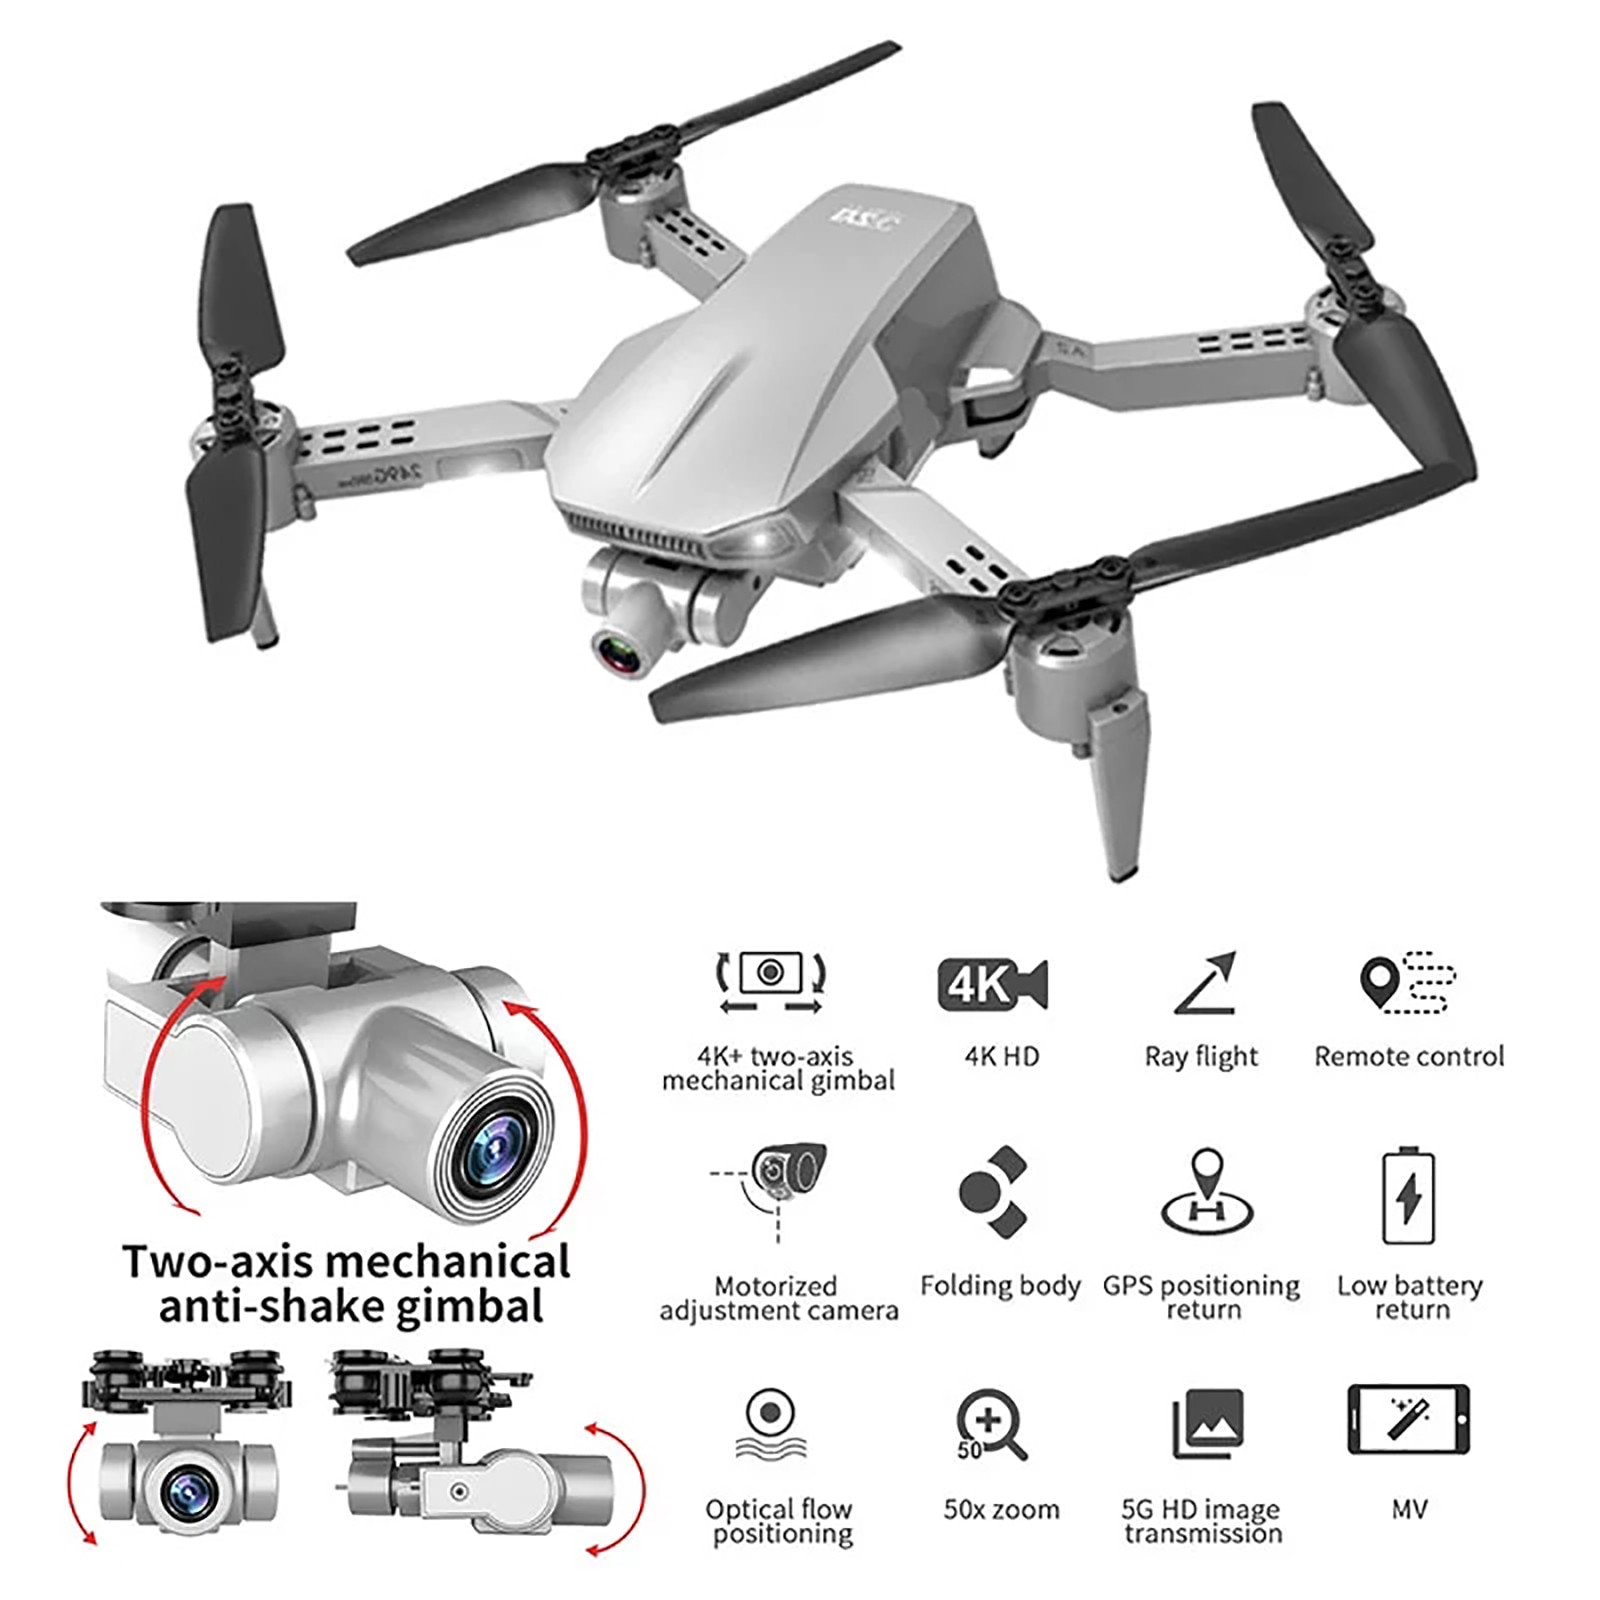 L106 Pro Gps Drone 4k RC Quadcopter With Camera Optical Flow Fpv Drone 4k Professional Drones With Gps And Camera Follow Dron #F